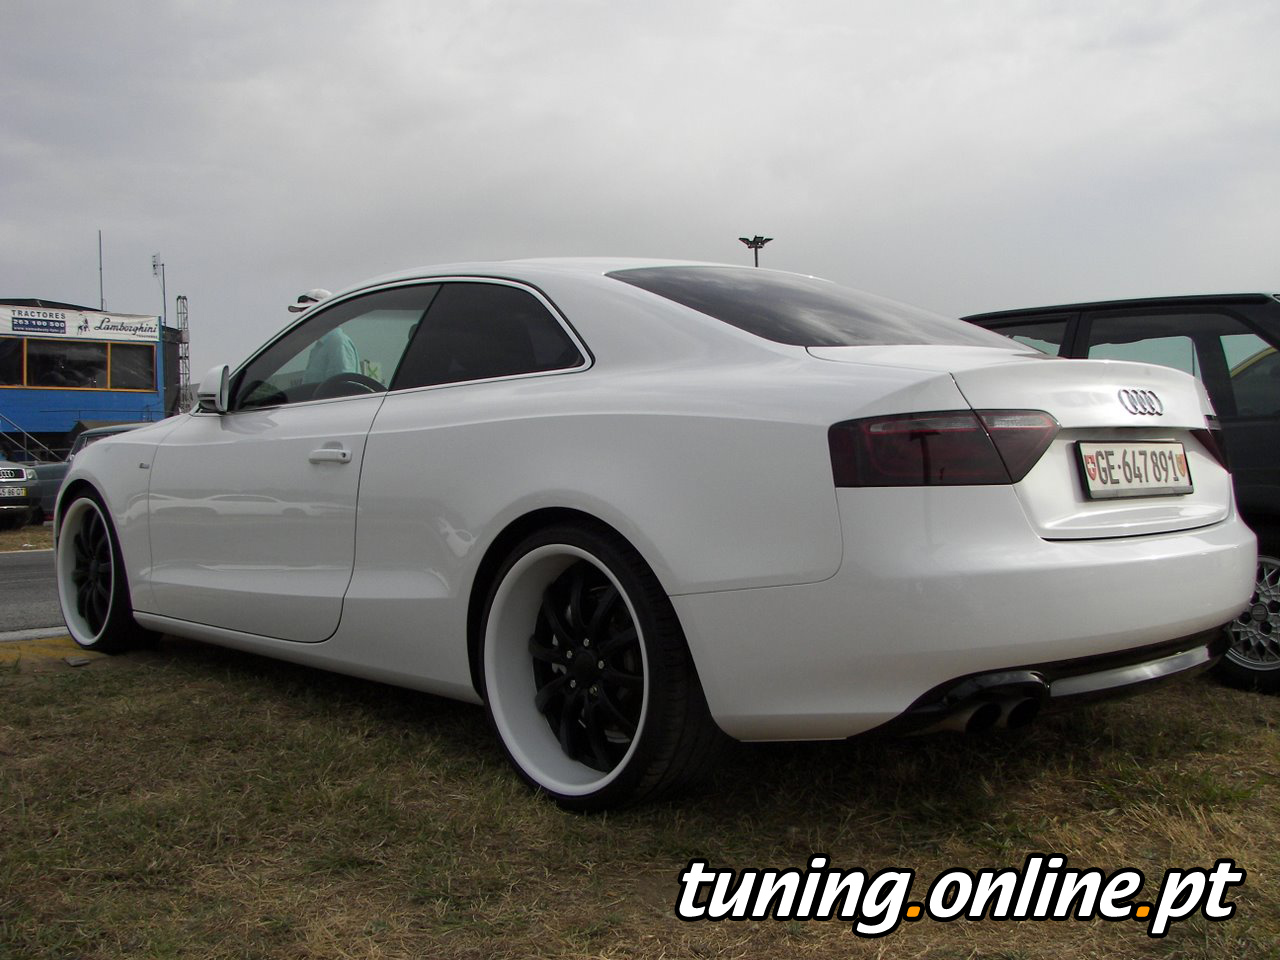 fotografia de tuning braga audi a5 tuning online. Black Bedroom Furniture Sets. Home Design Ideas